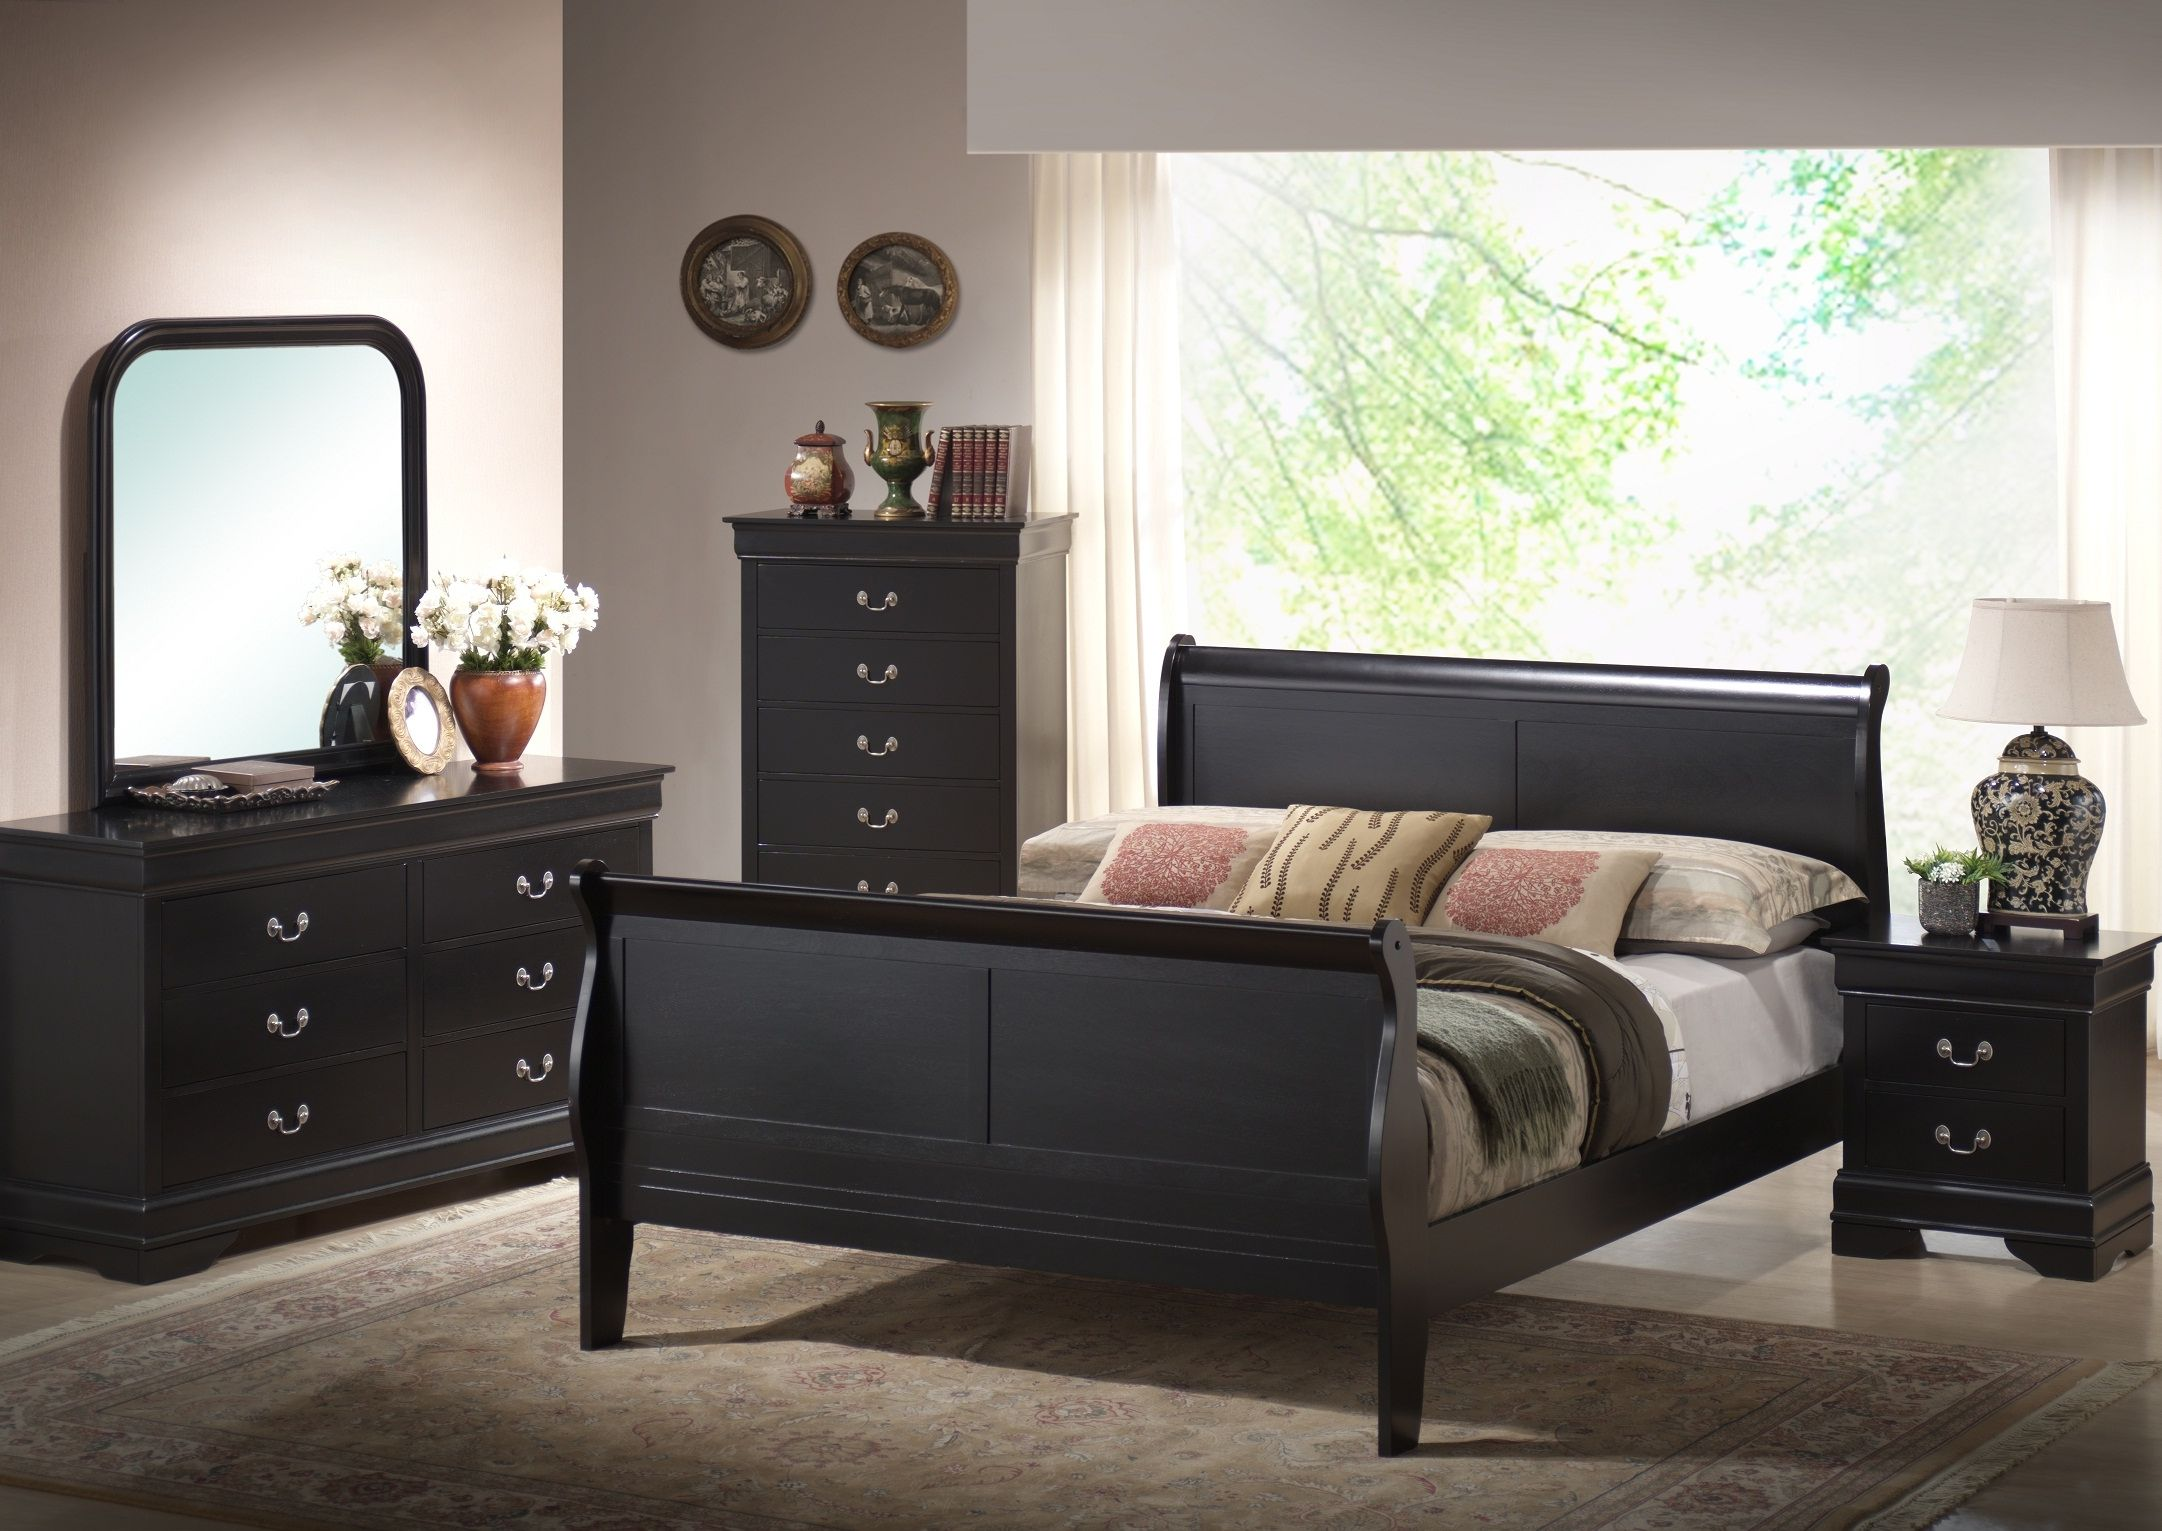 Louis Bedroom Furniture Black Louis B5934 5 Pc King Set Bedroom Sets Pinterest